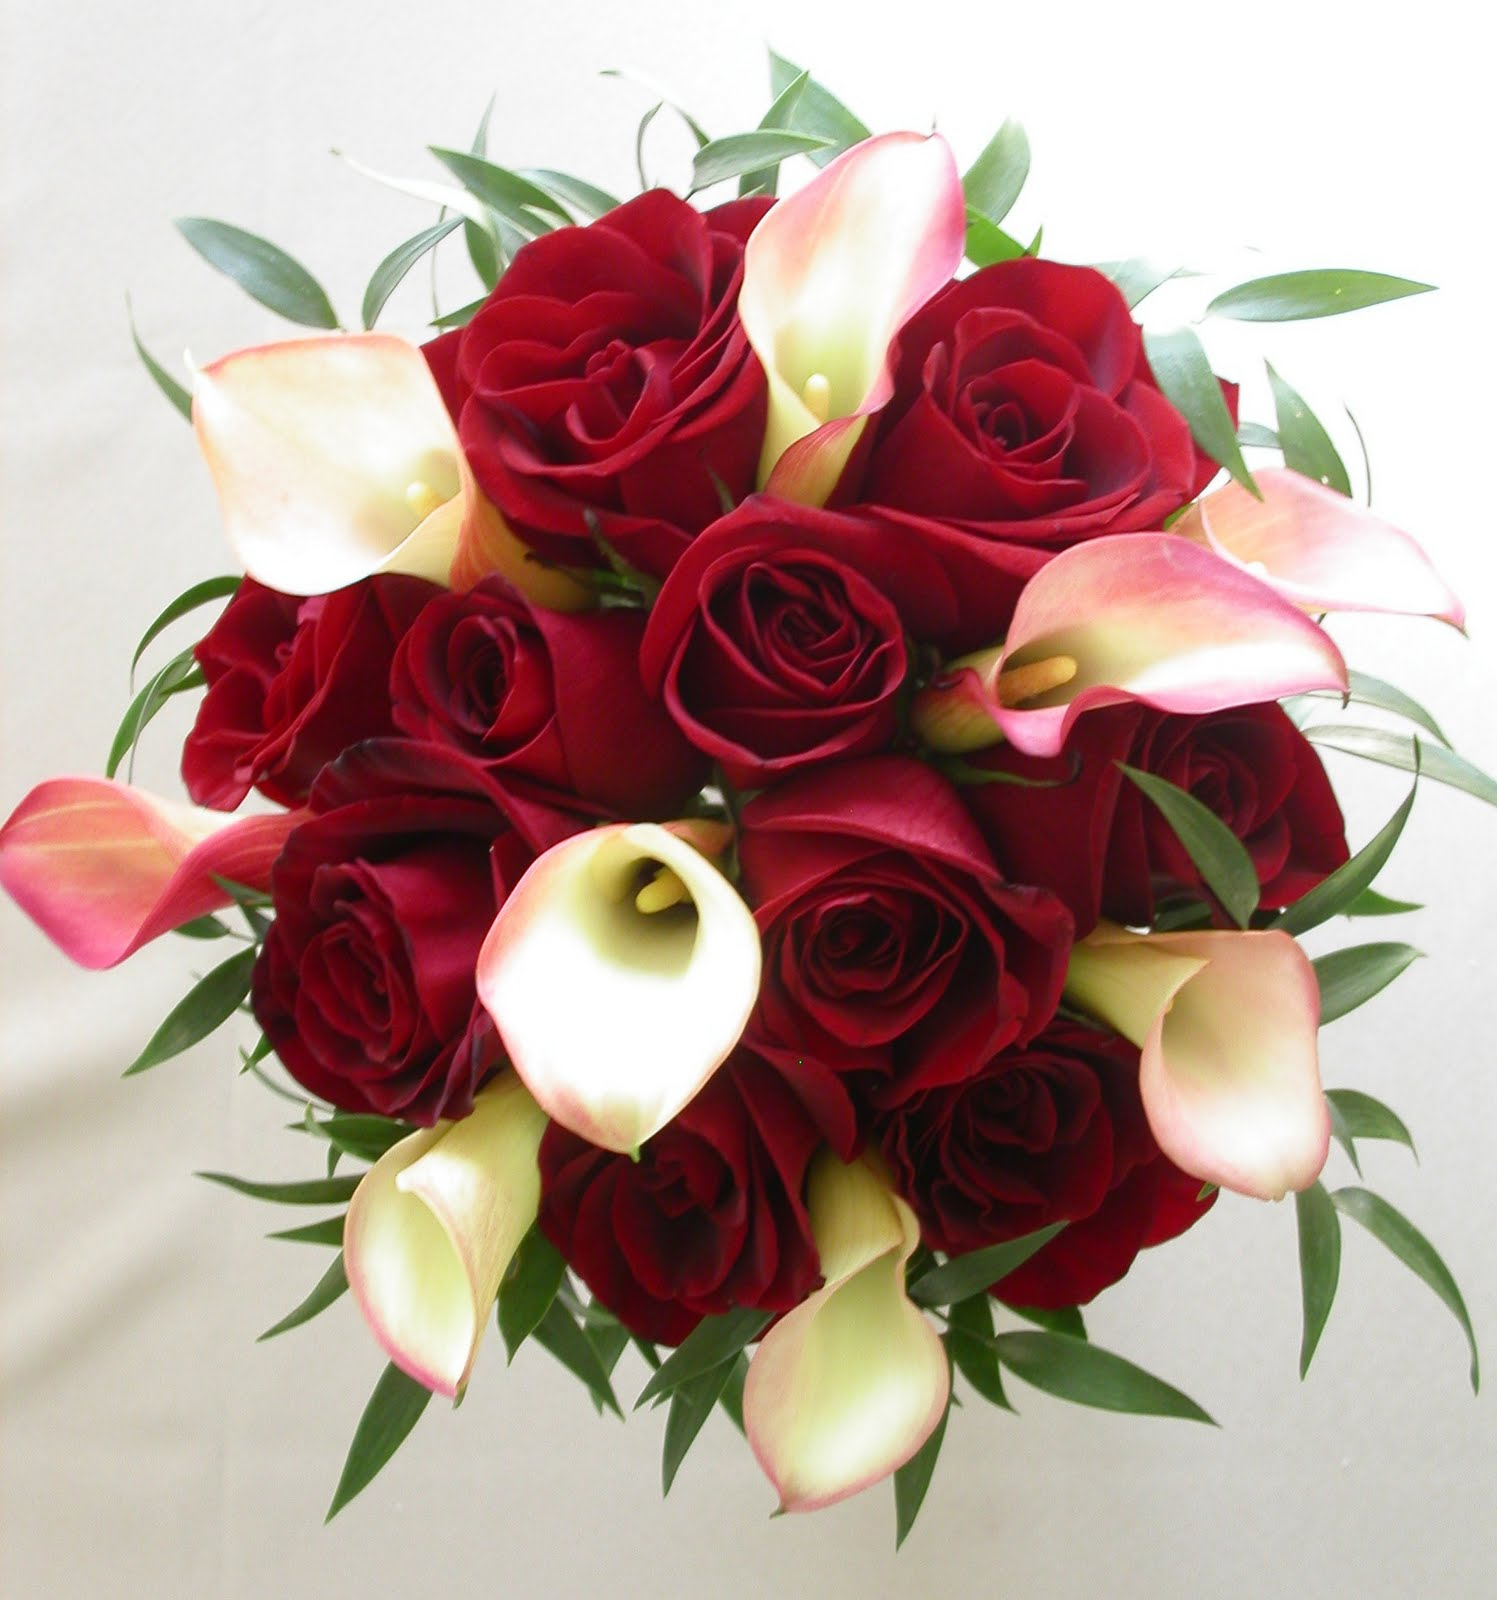 Wedding Flowers Roses And Lilies : Bouquet bridal calla lily and roses